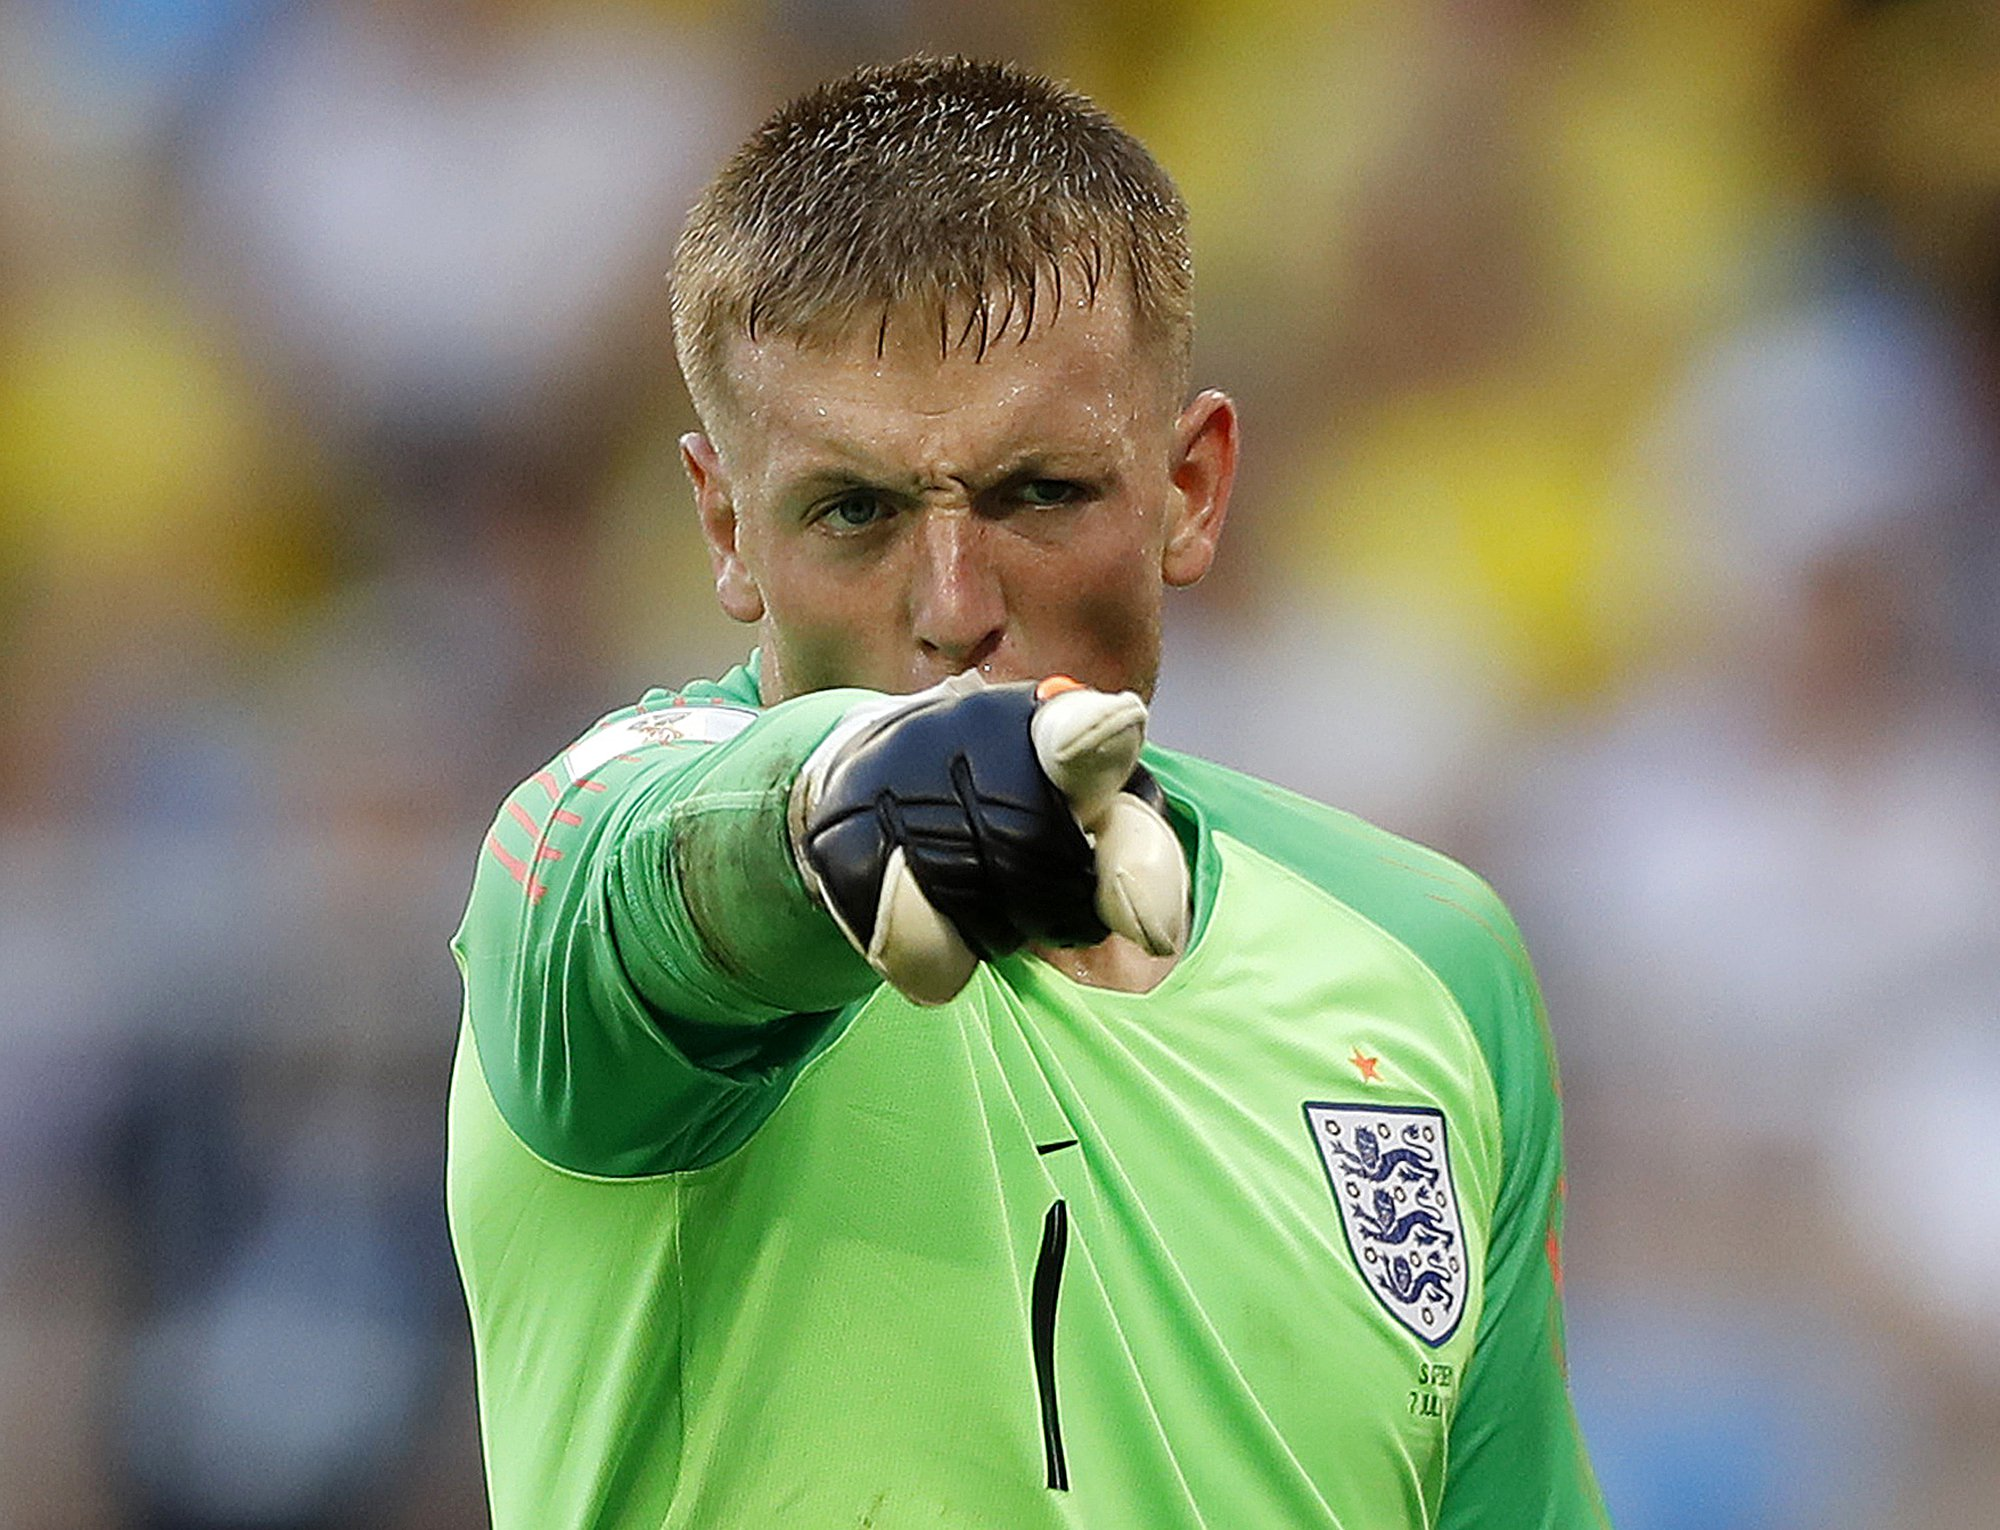 England goalkeeper Jordan Pickford gestures during the quarterfinal match between Sweden and England at the 2018 soccer World Cup in the Samara Arena, in Samara, Russia, Saturday, July 7, 2018. (AP Photo/Francisco Seco)